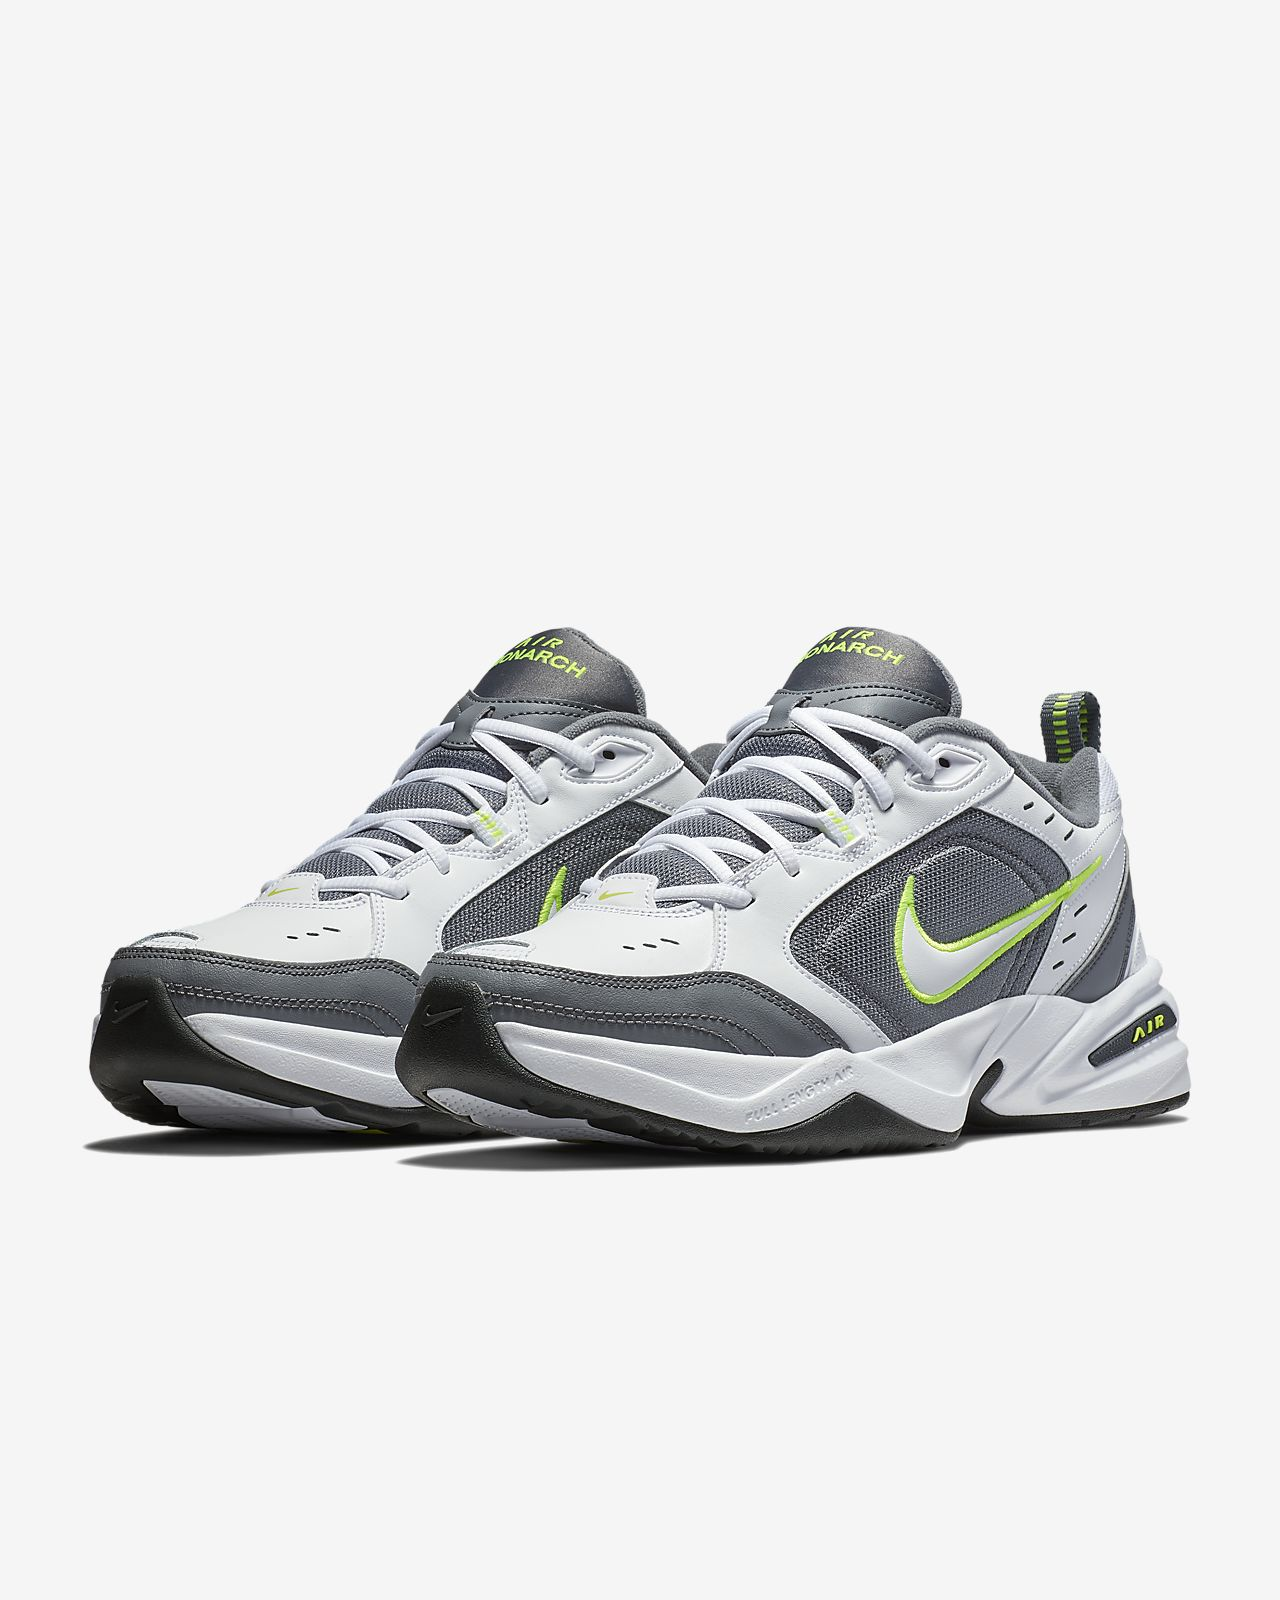 f749bea907204e Nike Air Monarch IV Lifestyle Gym Shoe. Nike.com